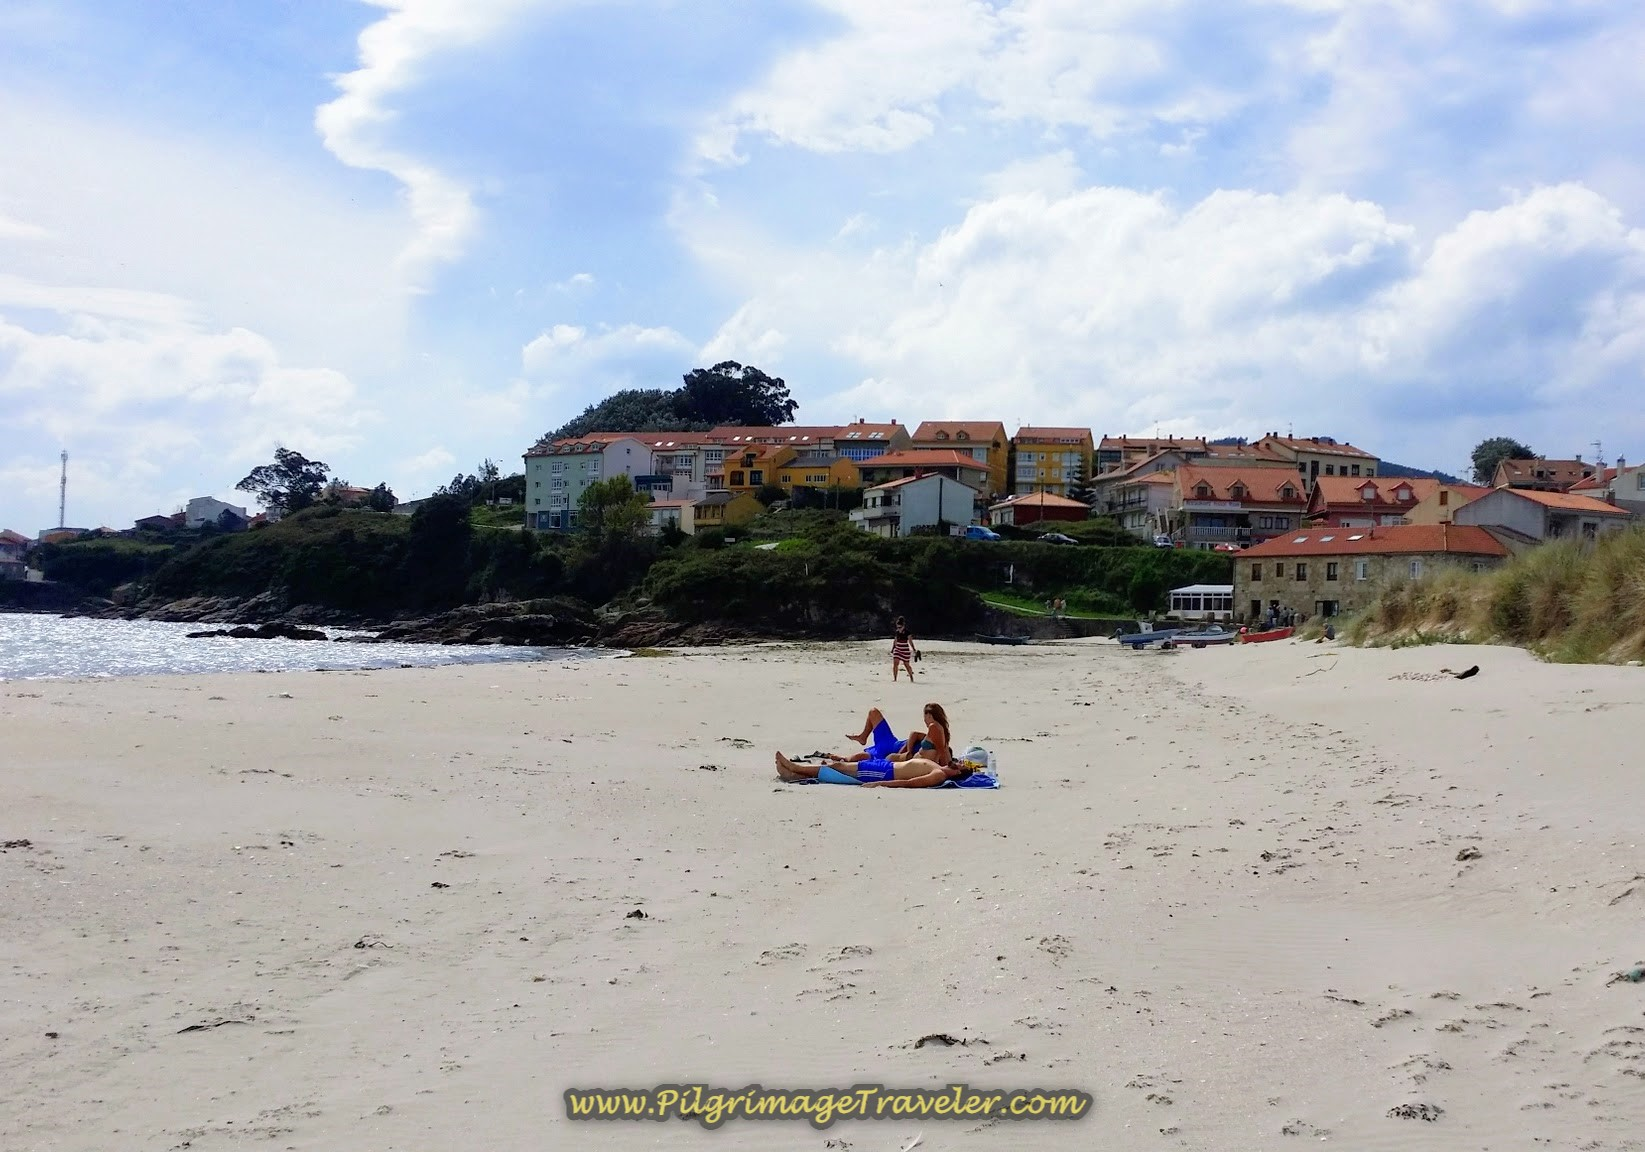 Langosteira Beach and the town of Finisterre, Spain